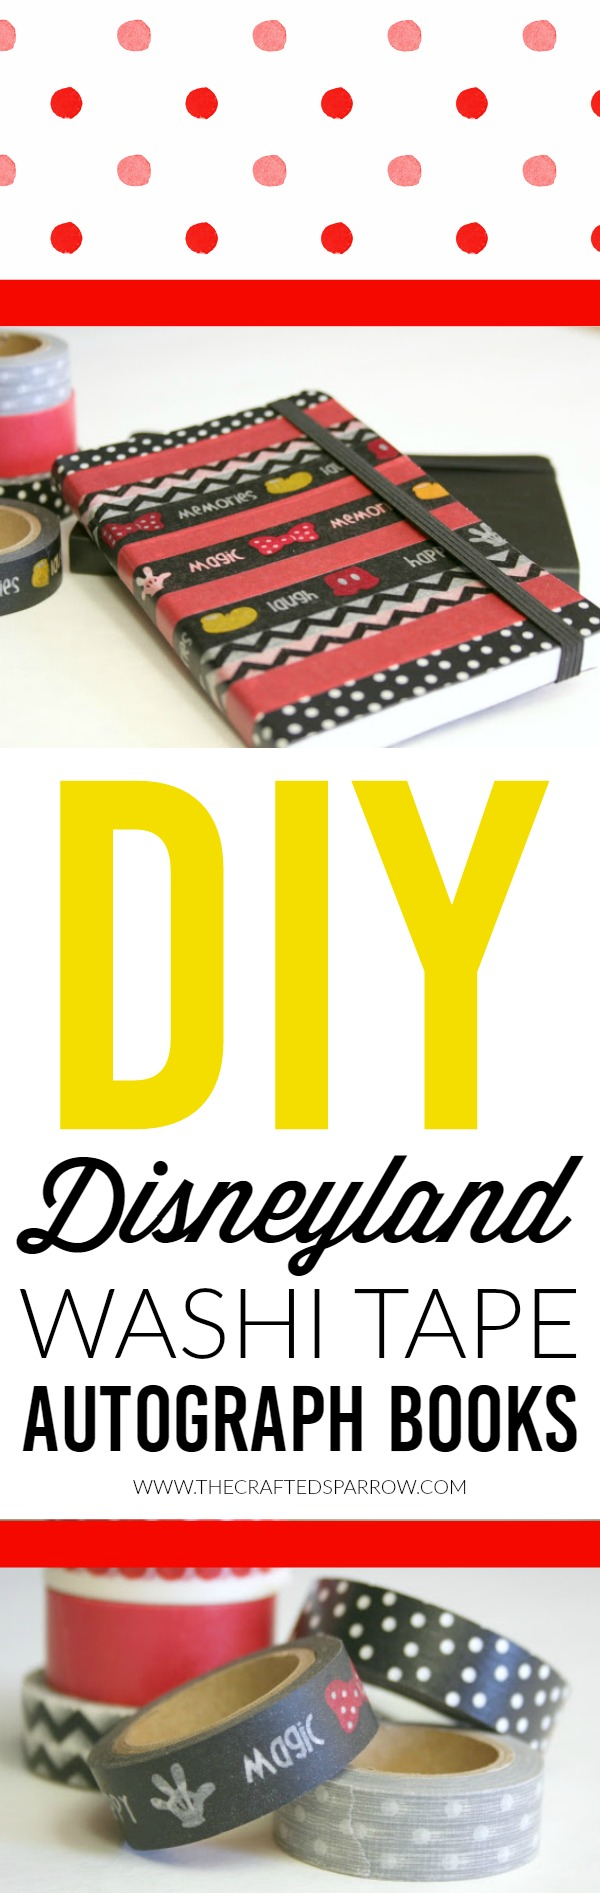 DIY Disneyland Washi Tape Autograph Books